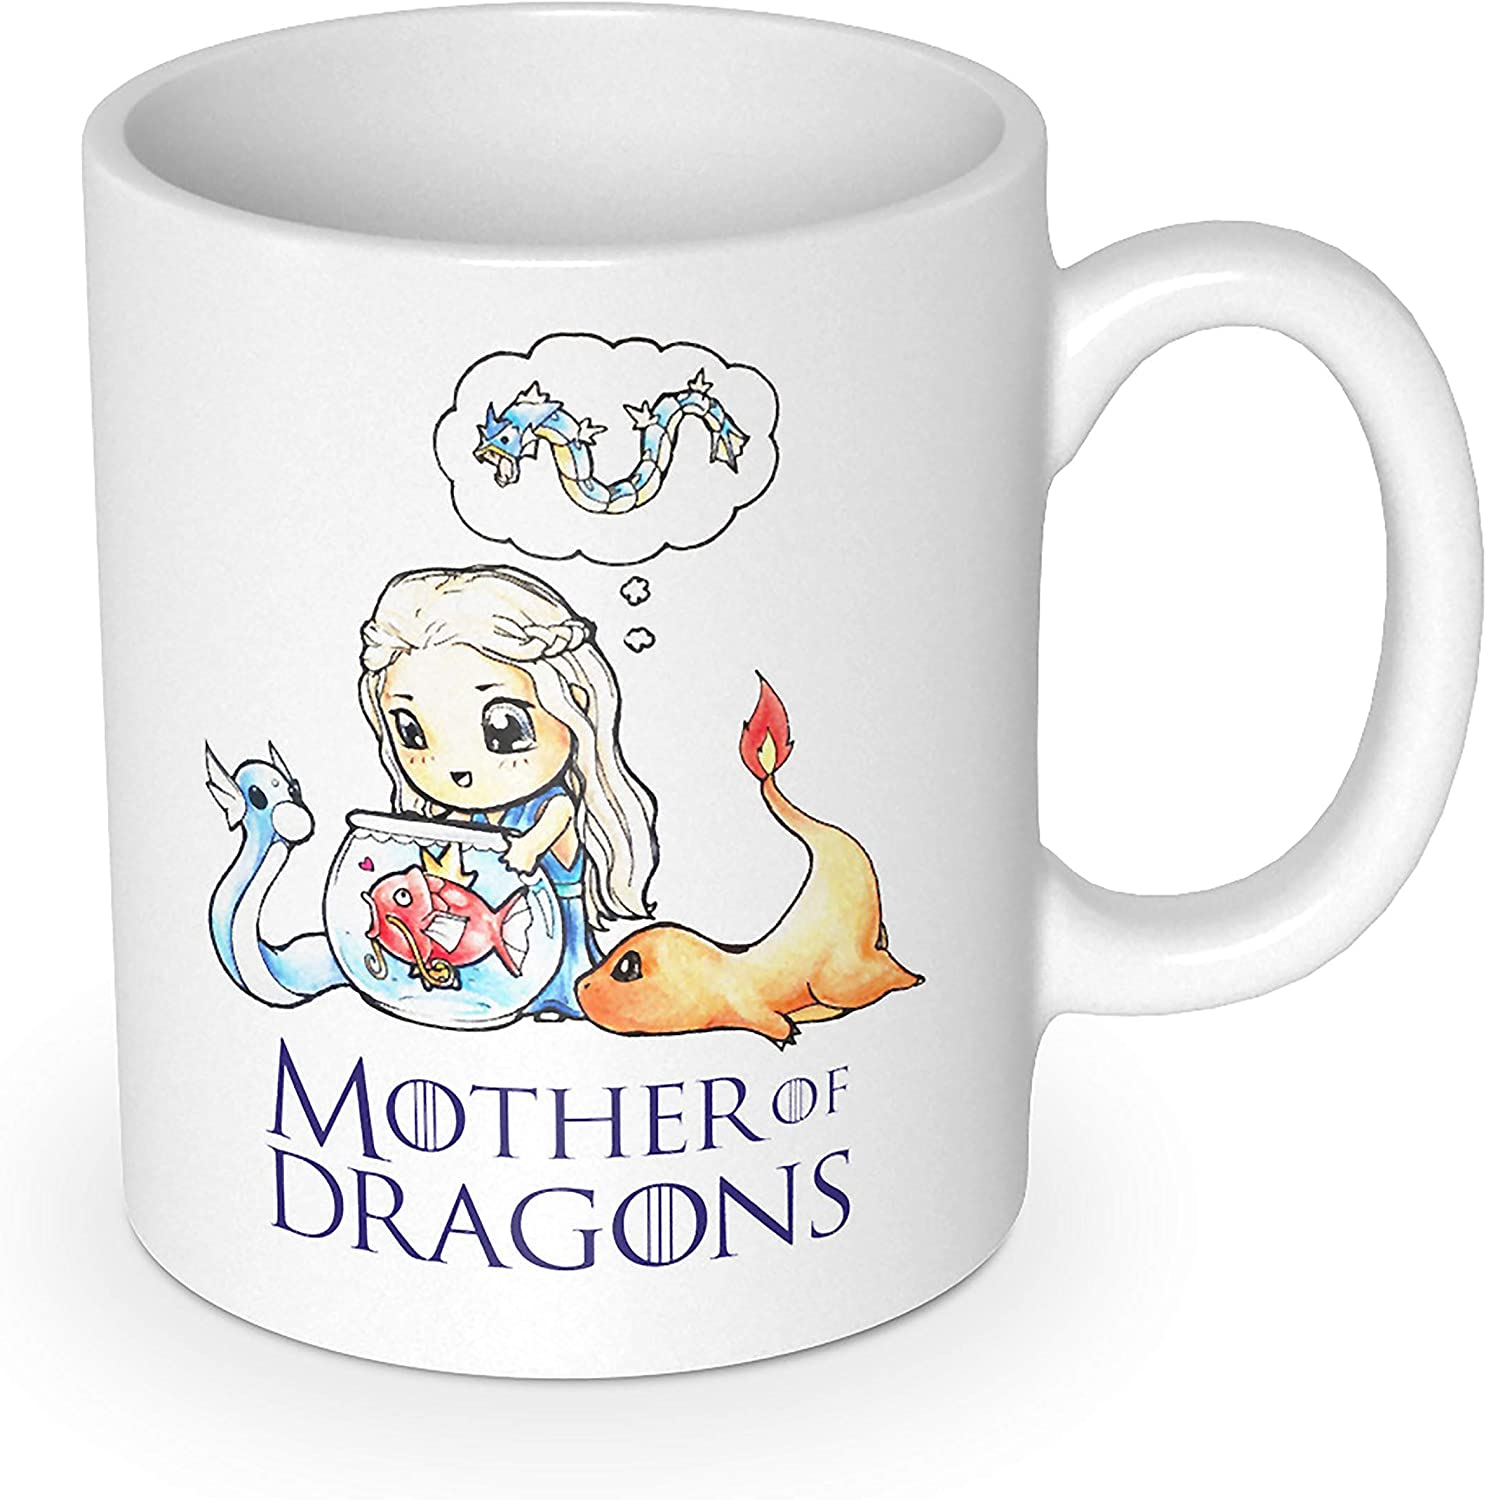 Amazon Com Getdigital Mother Of Dragons Mug Coffee Cup For Geeks And Anime Lovers 10 Oz 300 Ml Kitchen Dining